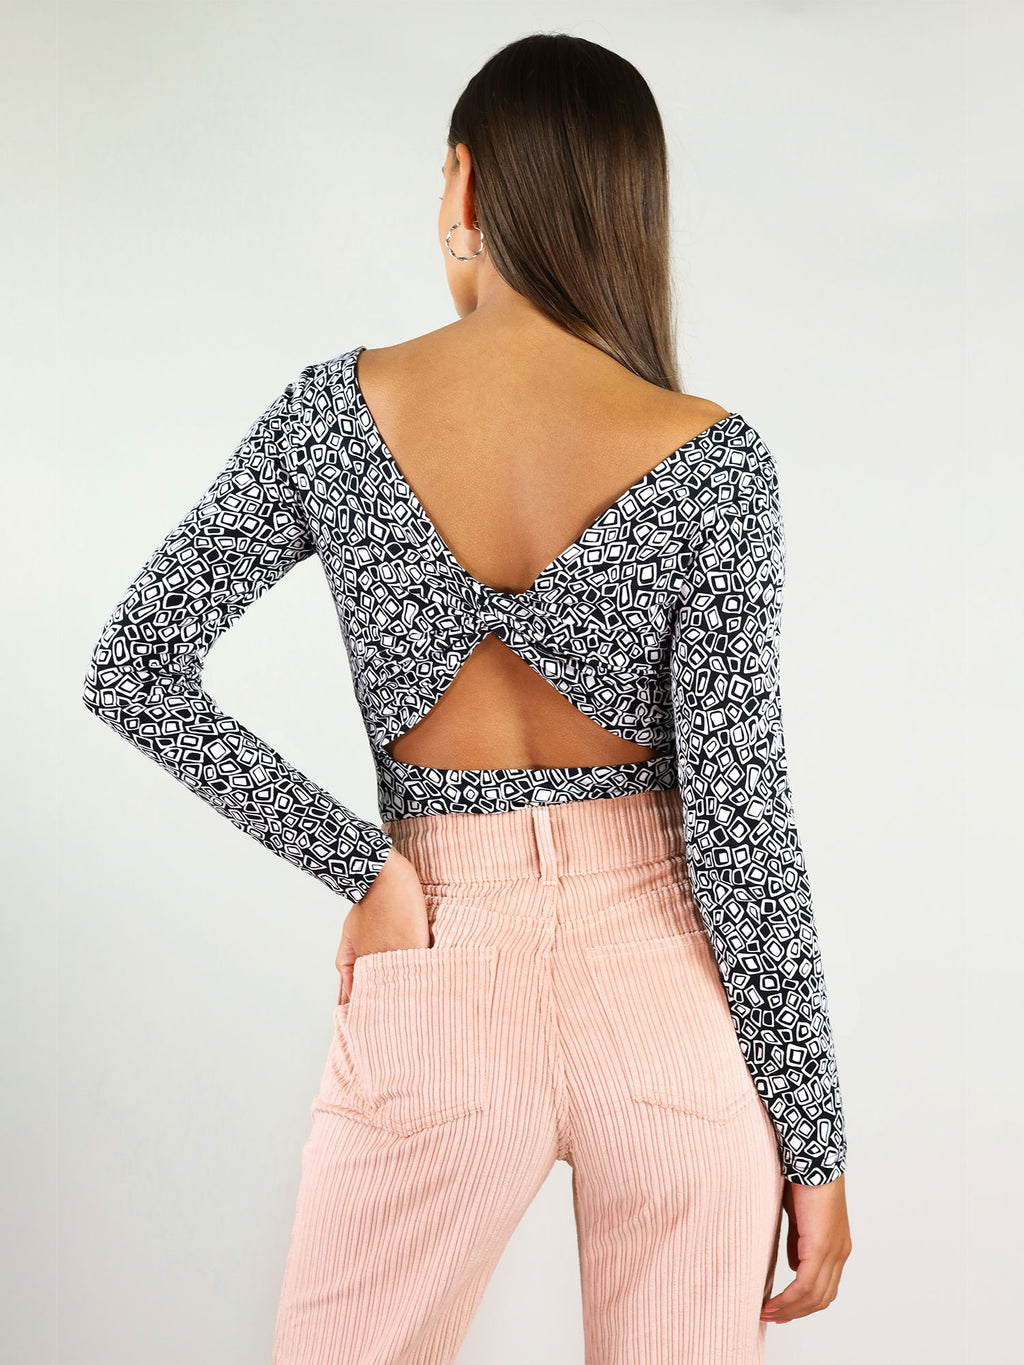 The twisted blouse has a white and black pattern and ribbon detail at the back. It has a semi-naked back and long sleeves.